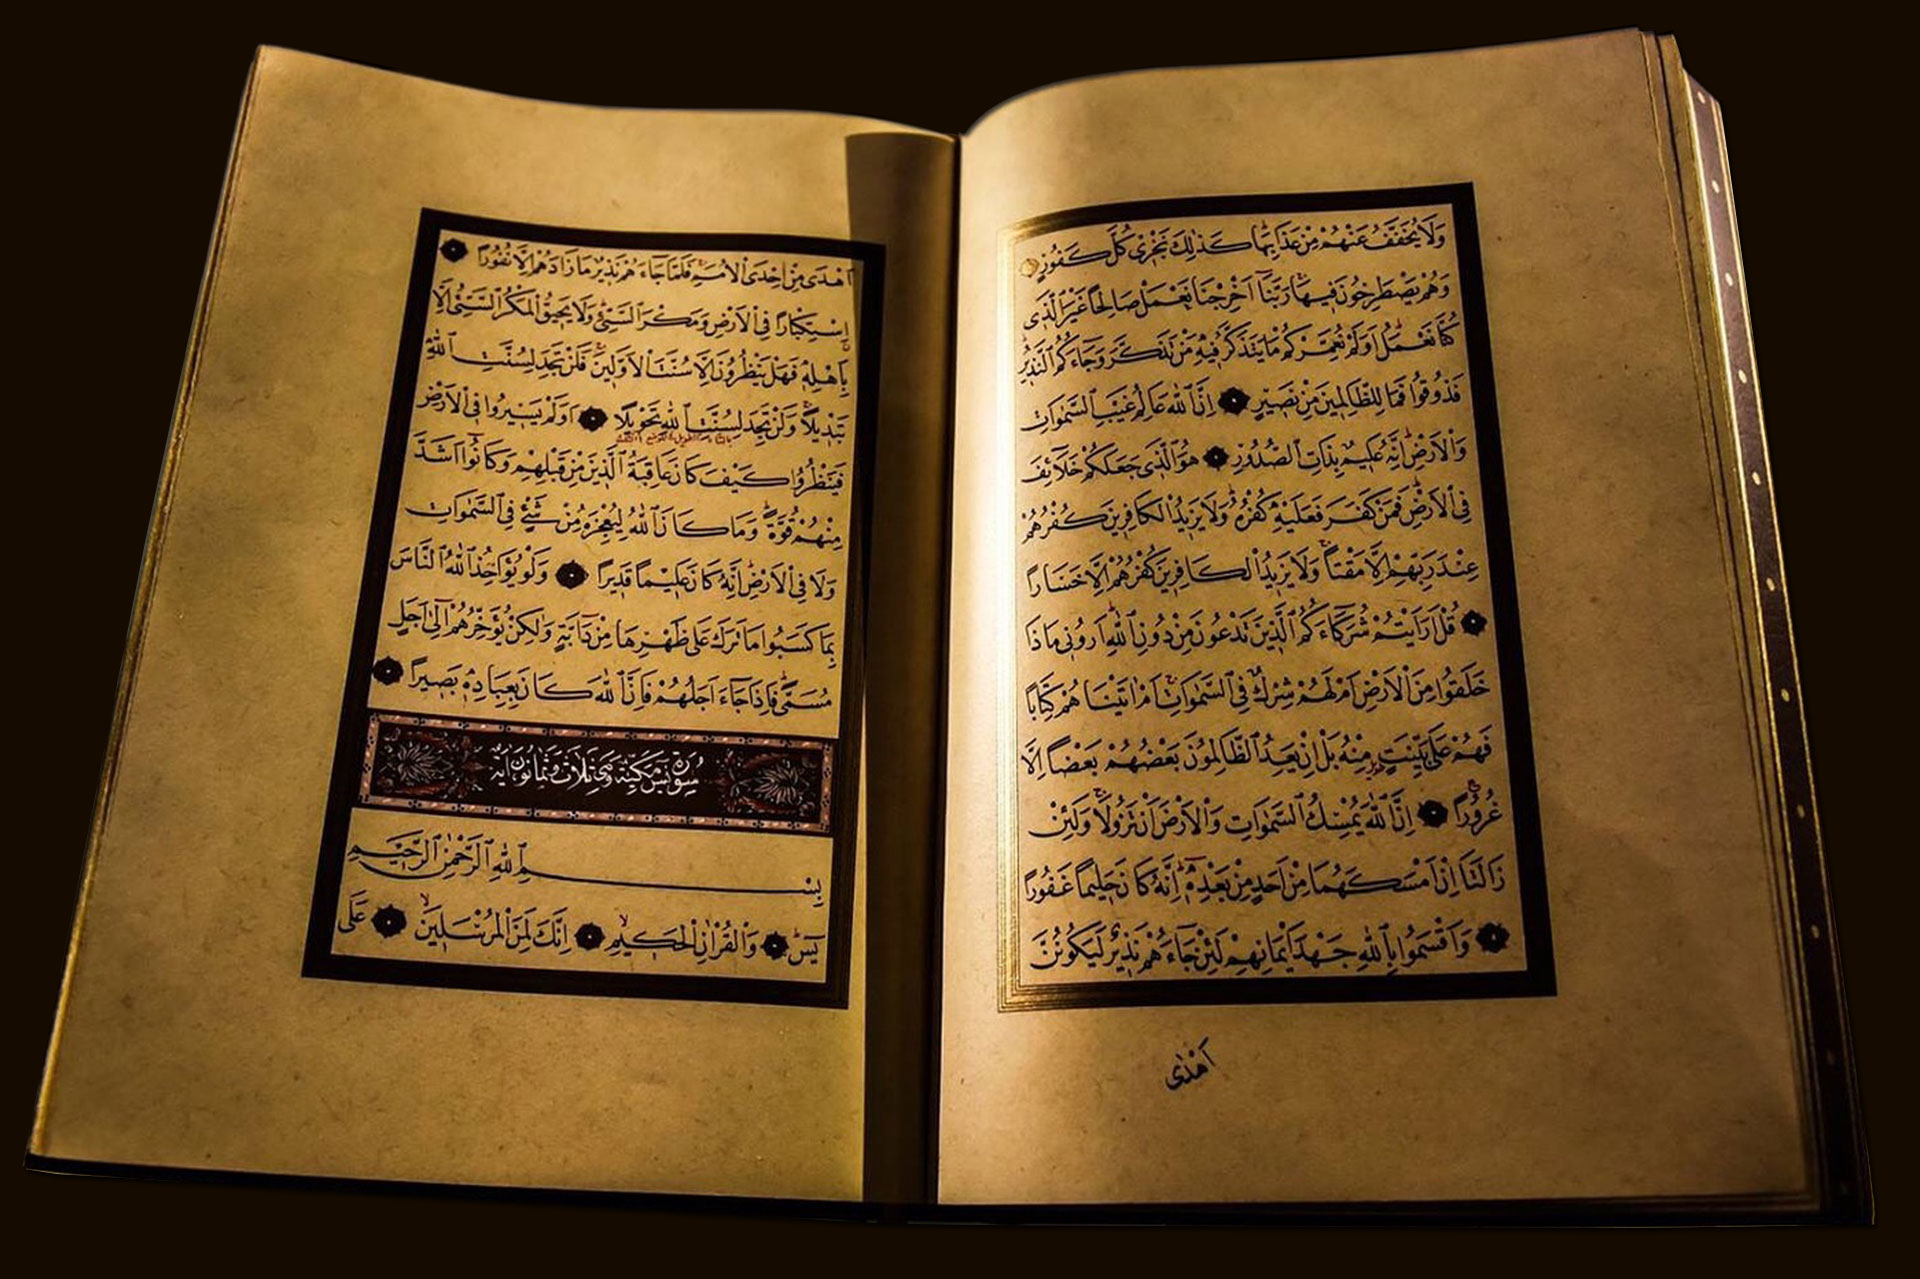 Abrogation from Muslim and Non-Muslim Perspectives